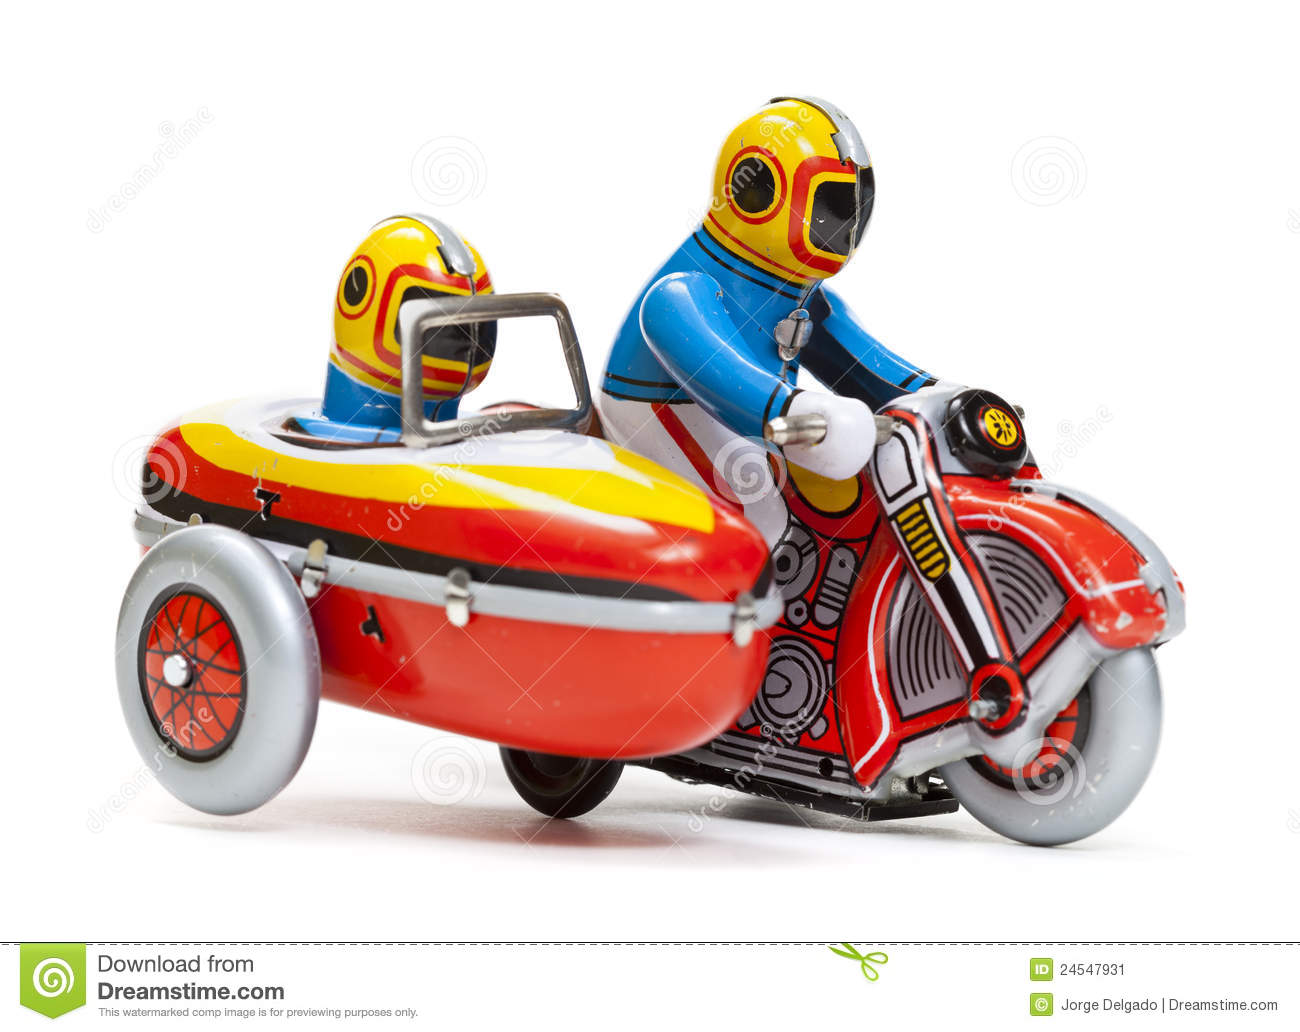 Tin Toy Sidecar Motorcycle Stock Image.